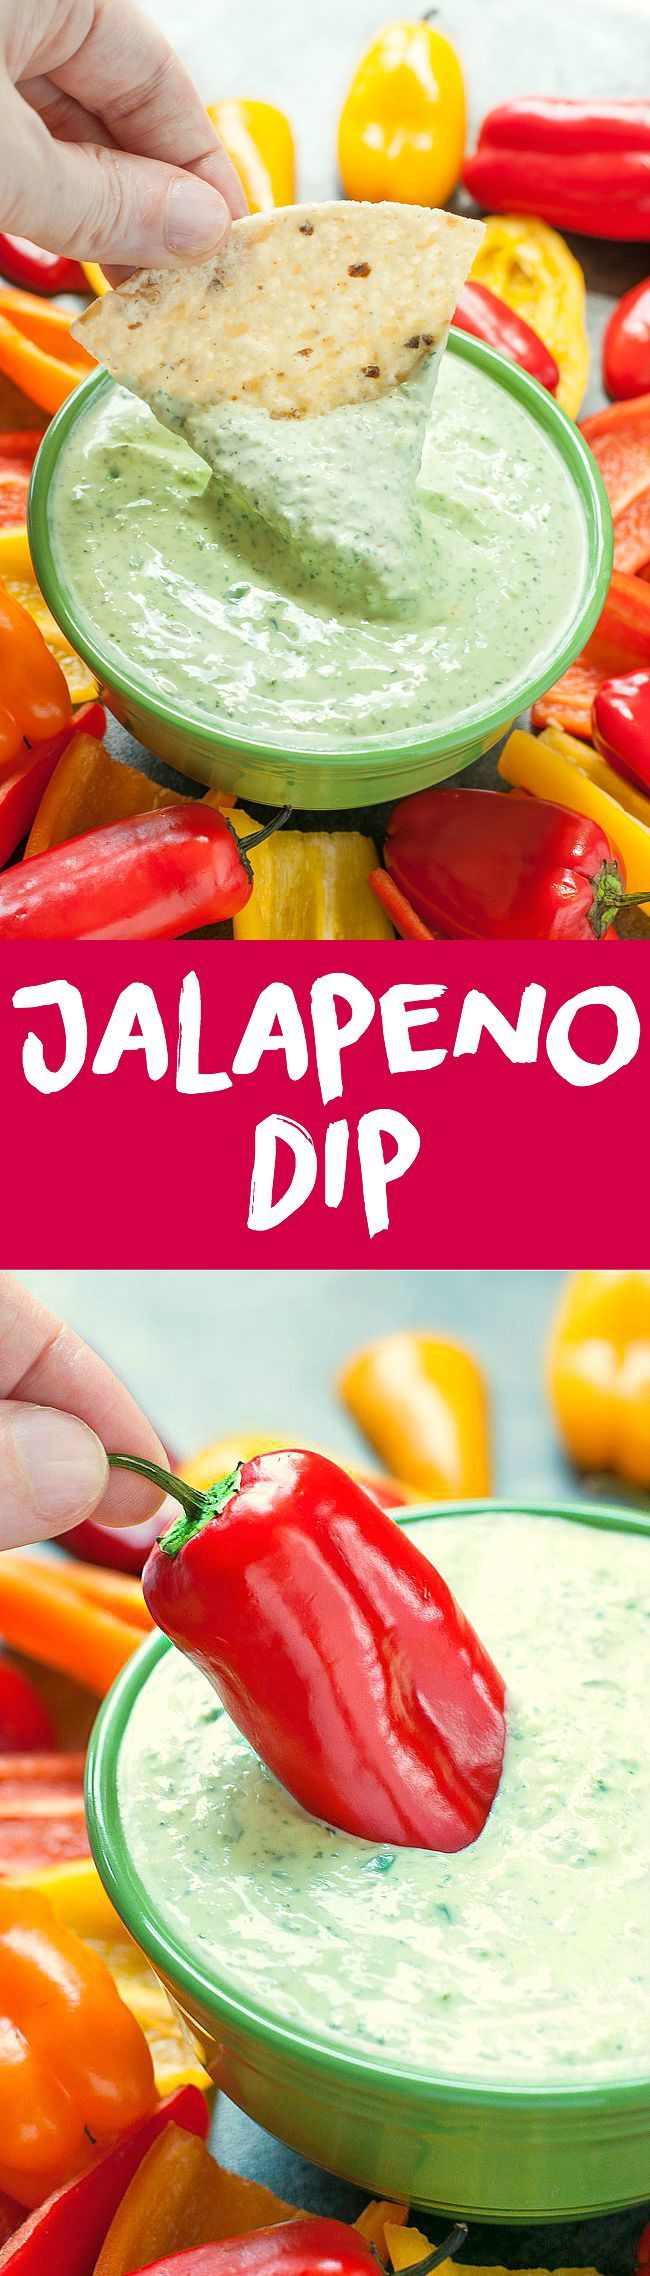 Get ready to party with this sassy, spicy 5-minute Greek Yogurt Jalapeño Dip!